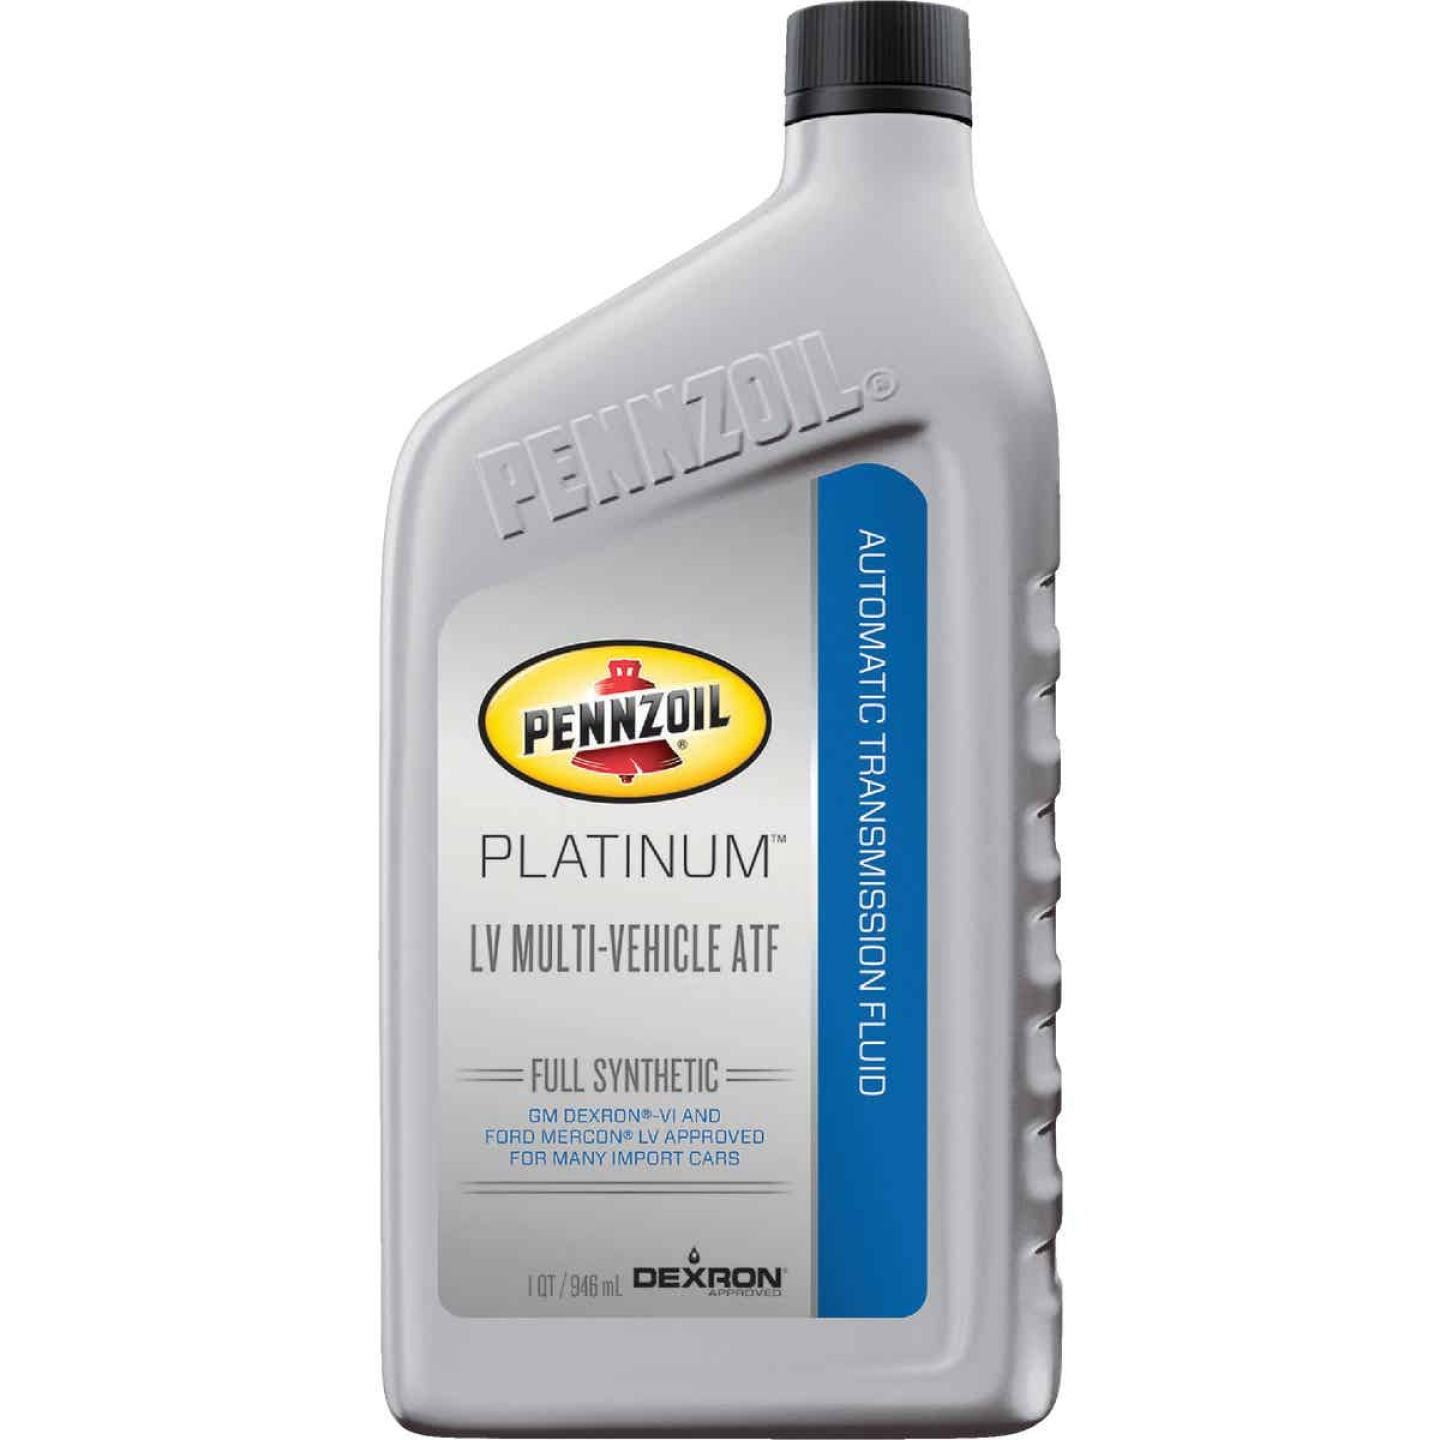 Pennzoil Platinum LV 1 Qt. Multi-Vehicle Automatic Transmission Fluid Image 1